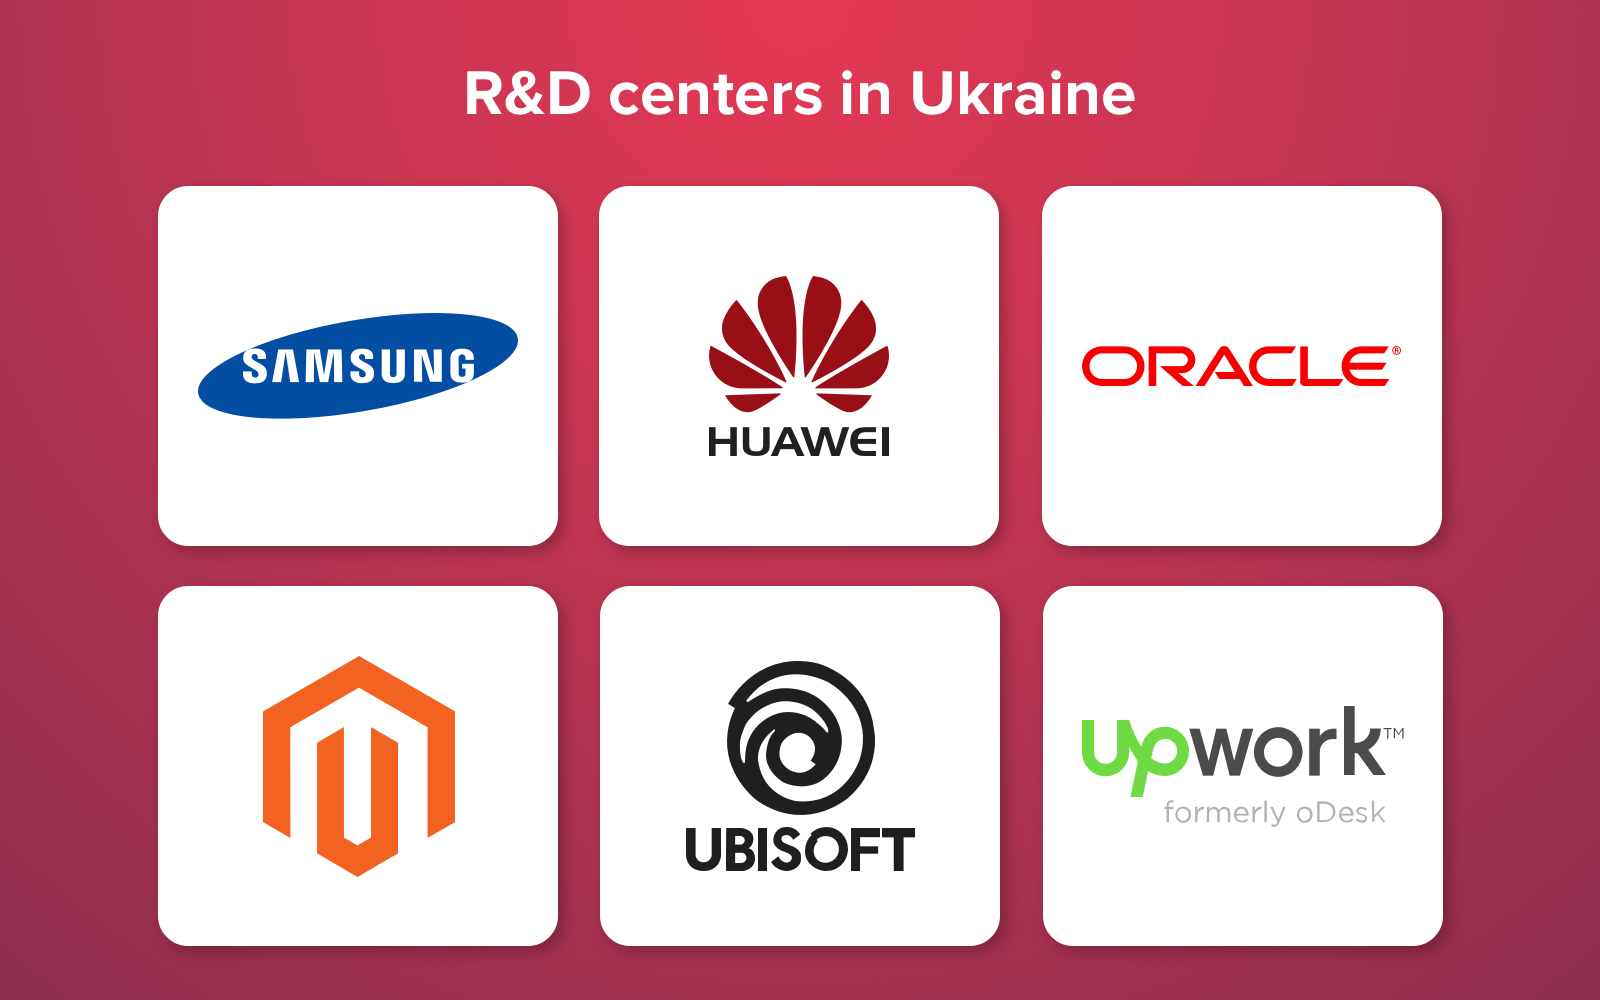 World-known companies that opened their R&D centers in Ukraine